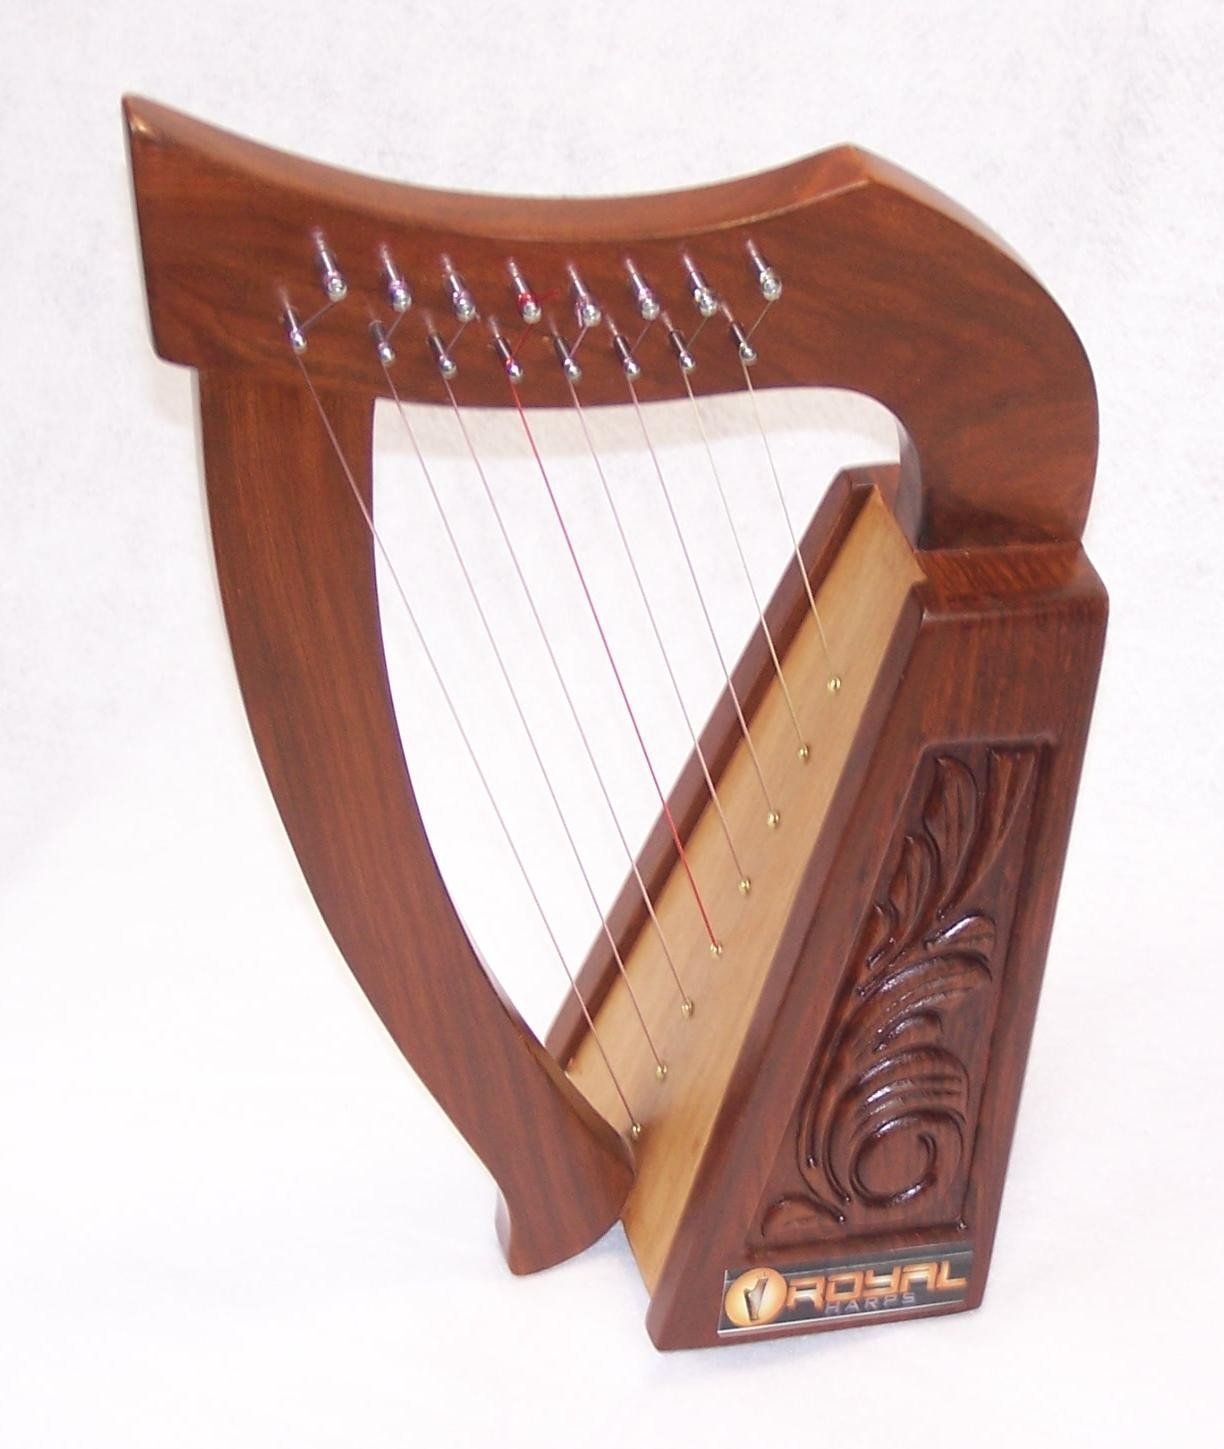 Mini Rosewood Harp 8 strings for Children with Bag Tuning key and extra Strings hand made STURGIS RHP8-a